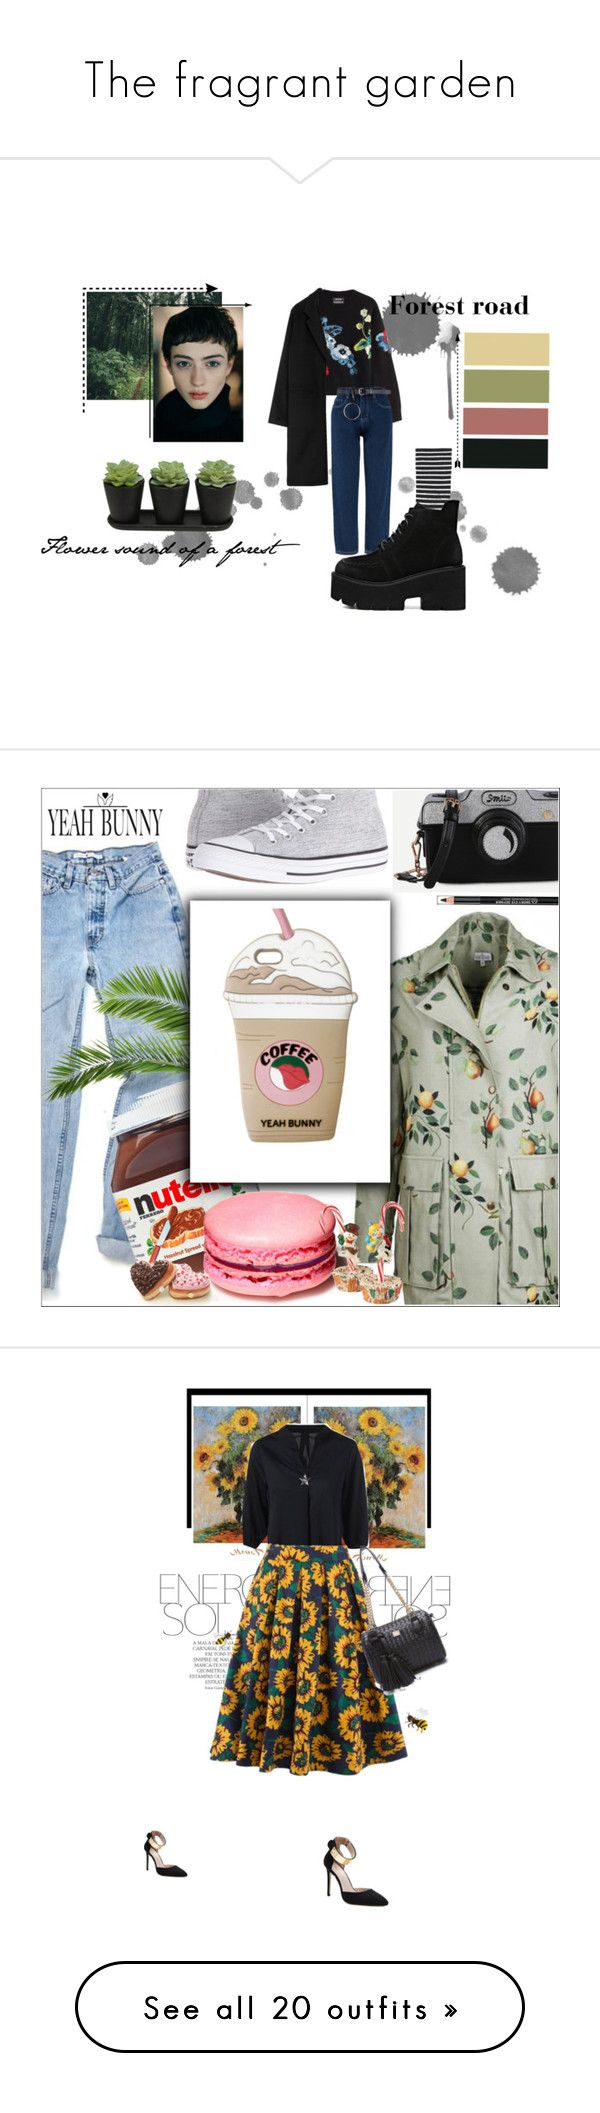 """The fragrant garden"" by marowa-v ❤ liked on Polyvore featuring Anthony Vaccarello, Uniqlo, Converse, Yeah Bunny, The Body Shop, YeahBunny, Magdalena, skirts, CasualChic and trends"